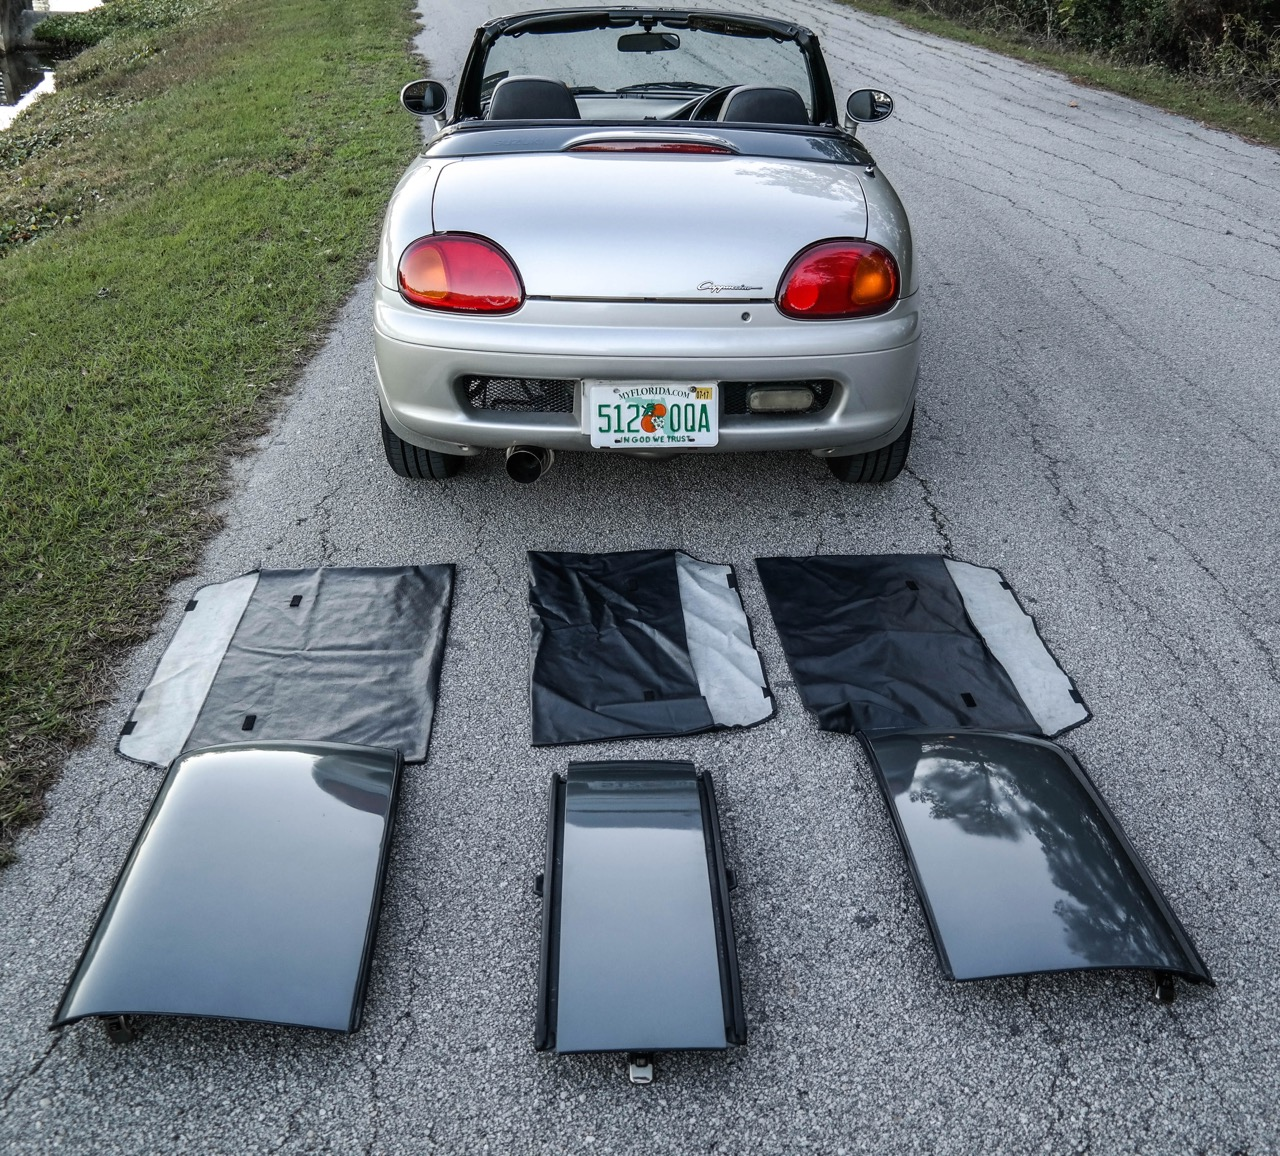 Roof-panel array comes with the car